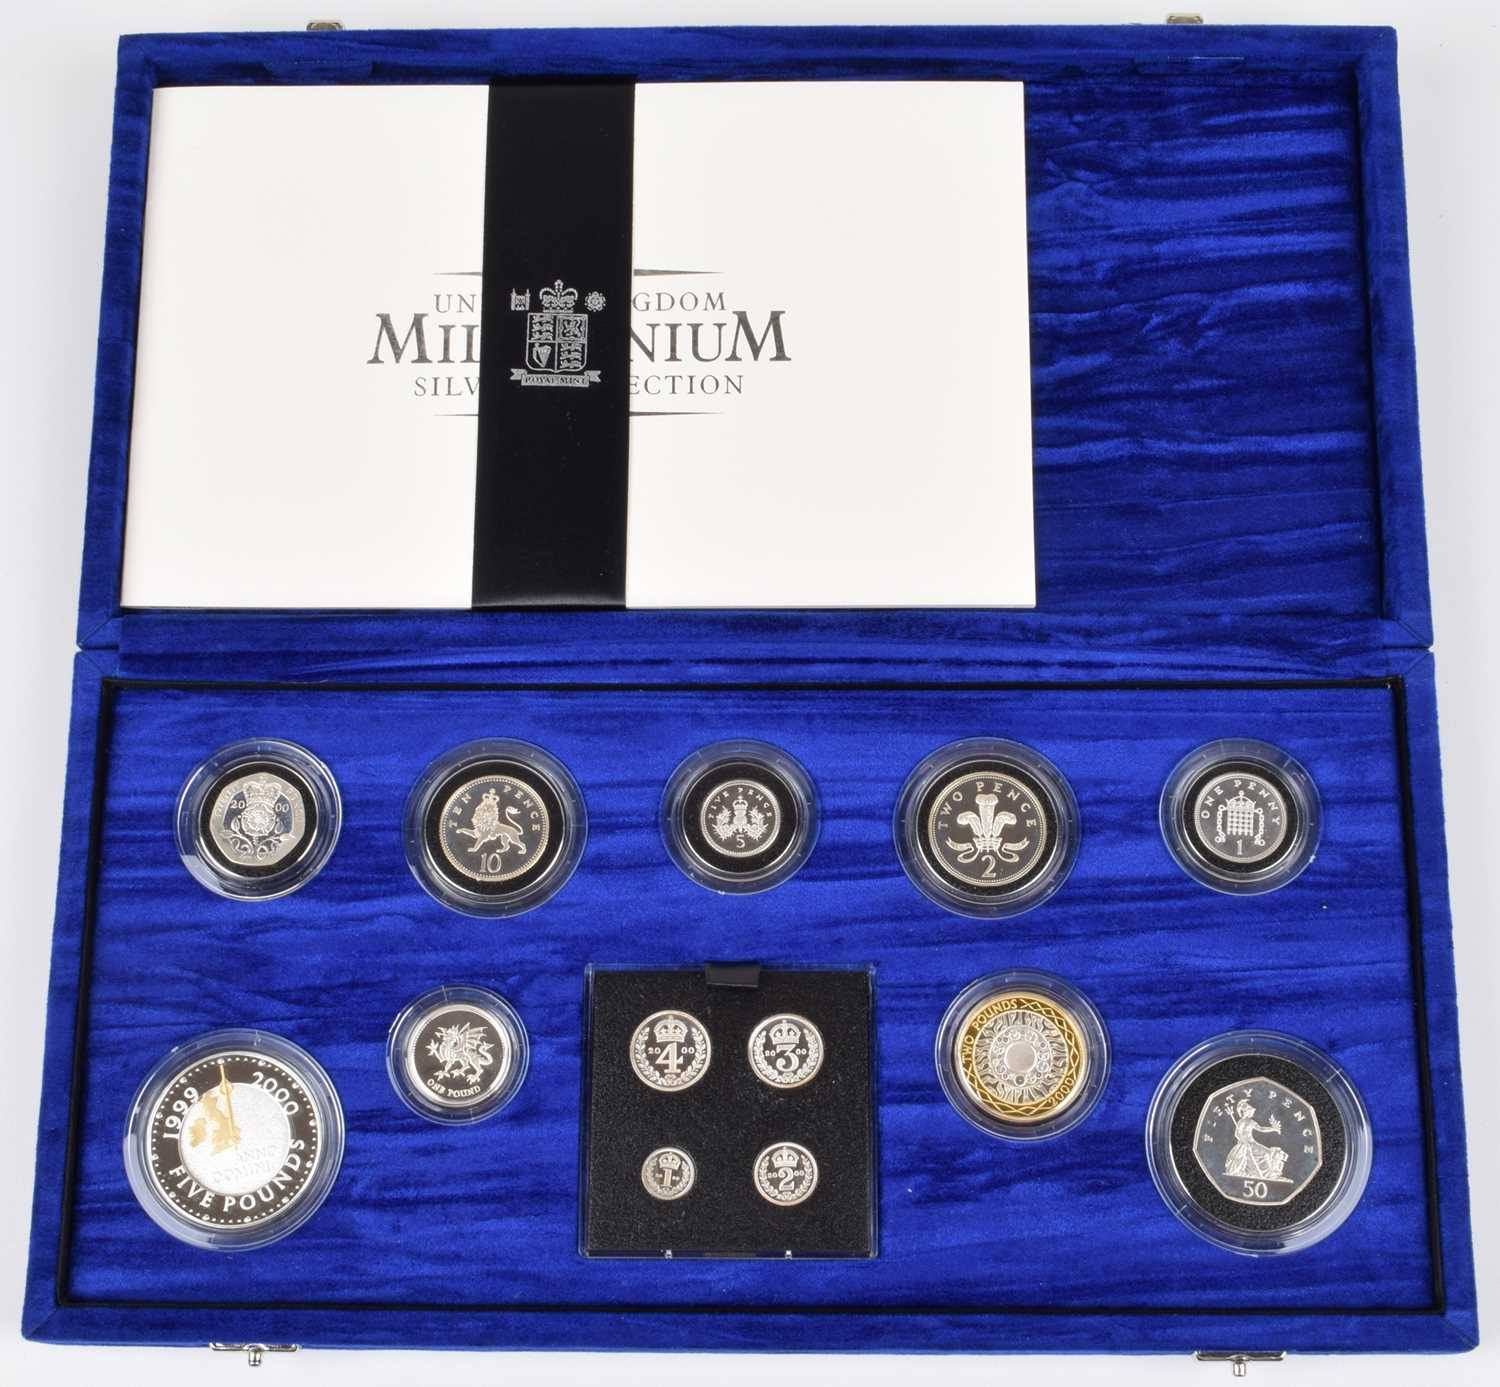 Lot 67 - The Royal Mint United Kingdom Millennium Silver Collection.